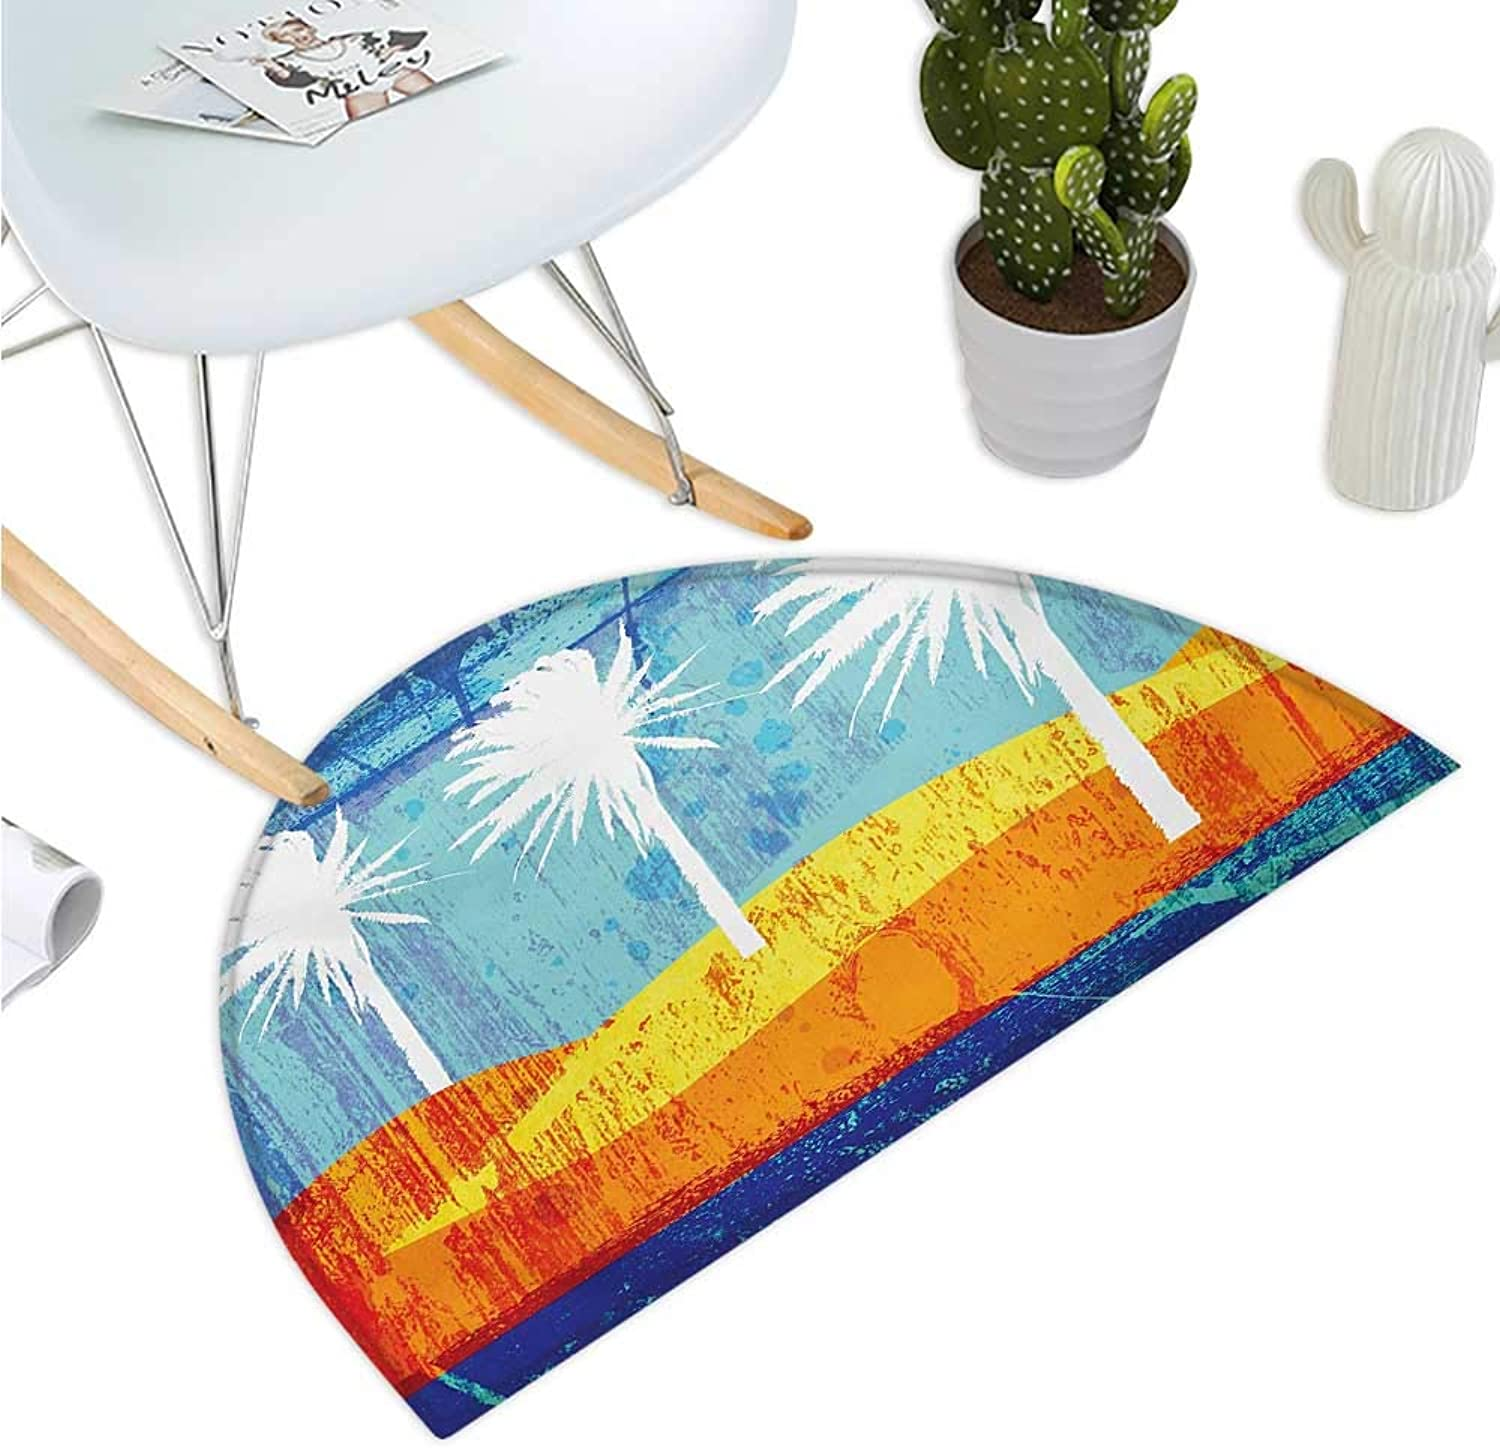 Burnt orange Semicircle Doormat Contemporary Motley Stained Distressed Tropic Beach with Palms Graphic Entry Door Mat H 43.3  xD 64.9  orange bluee White